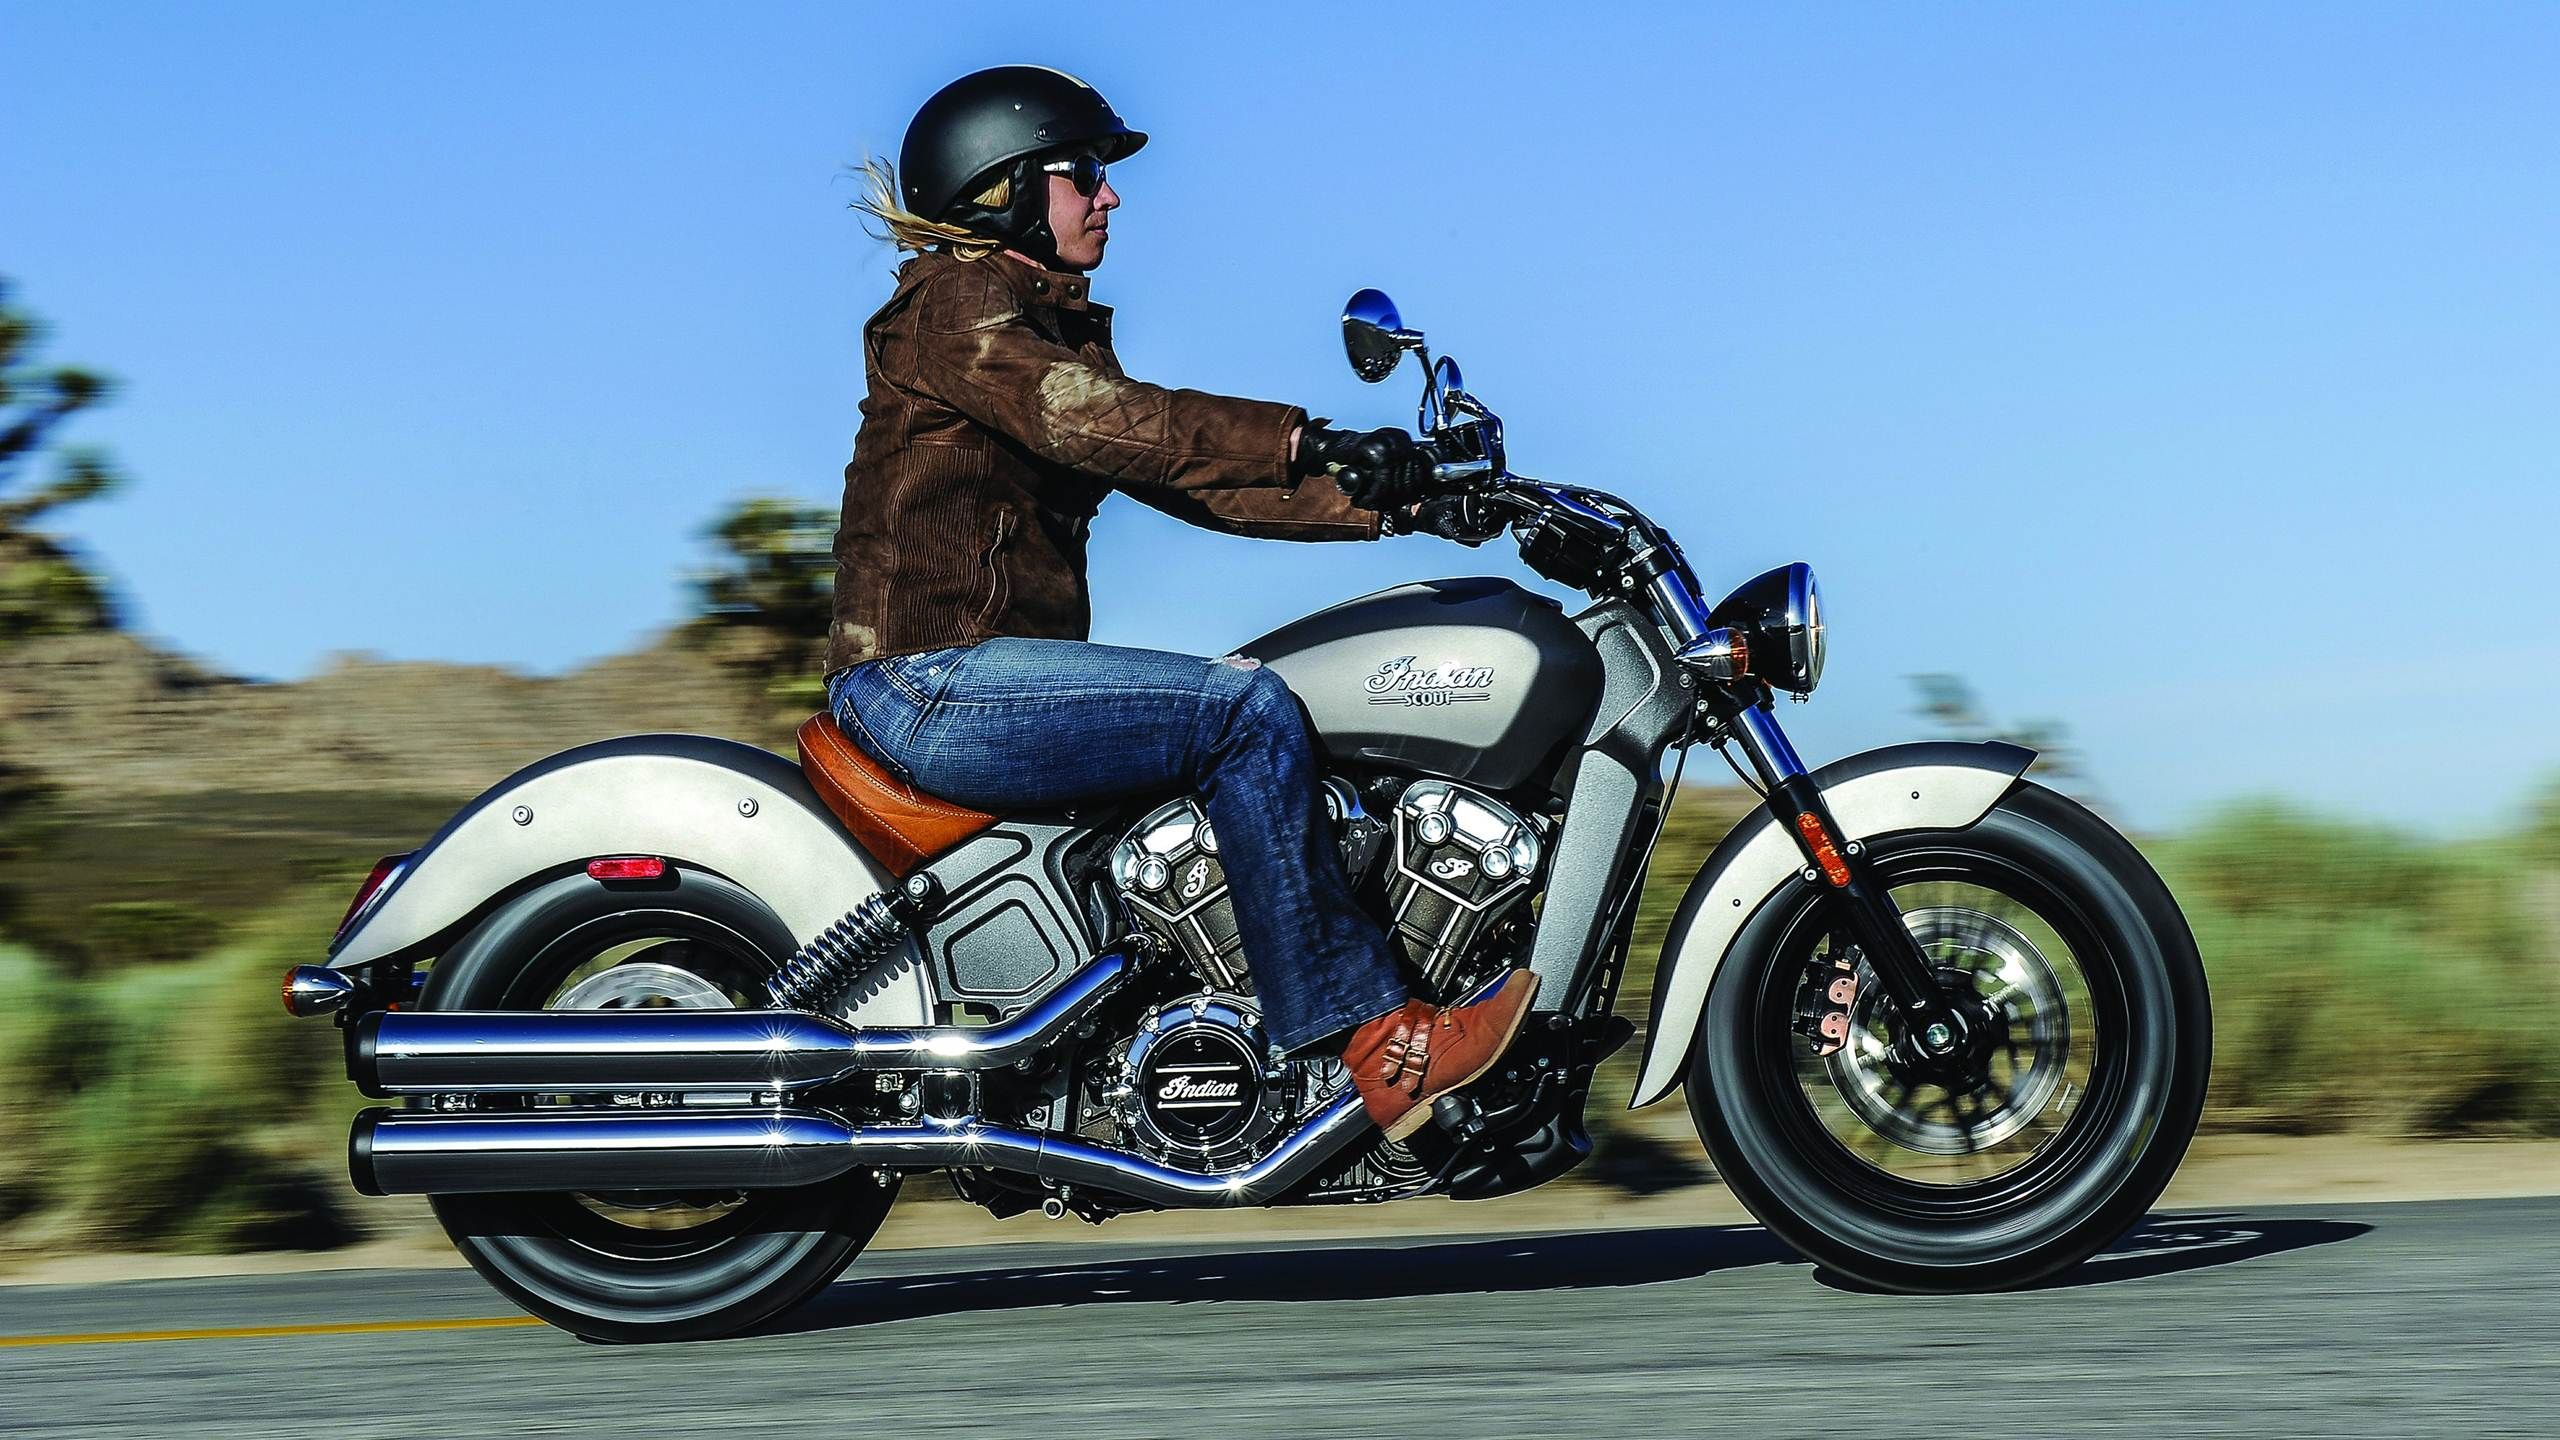 Indian Scout launched at a price of 11.99 lakhs by Polaris